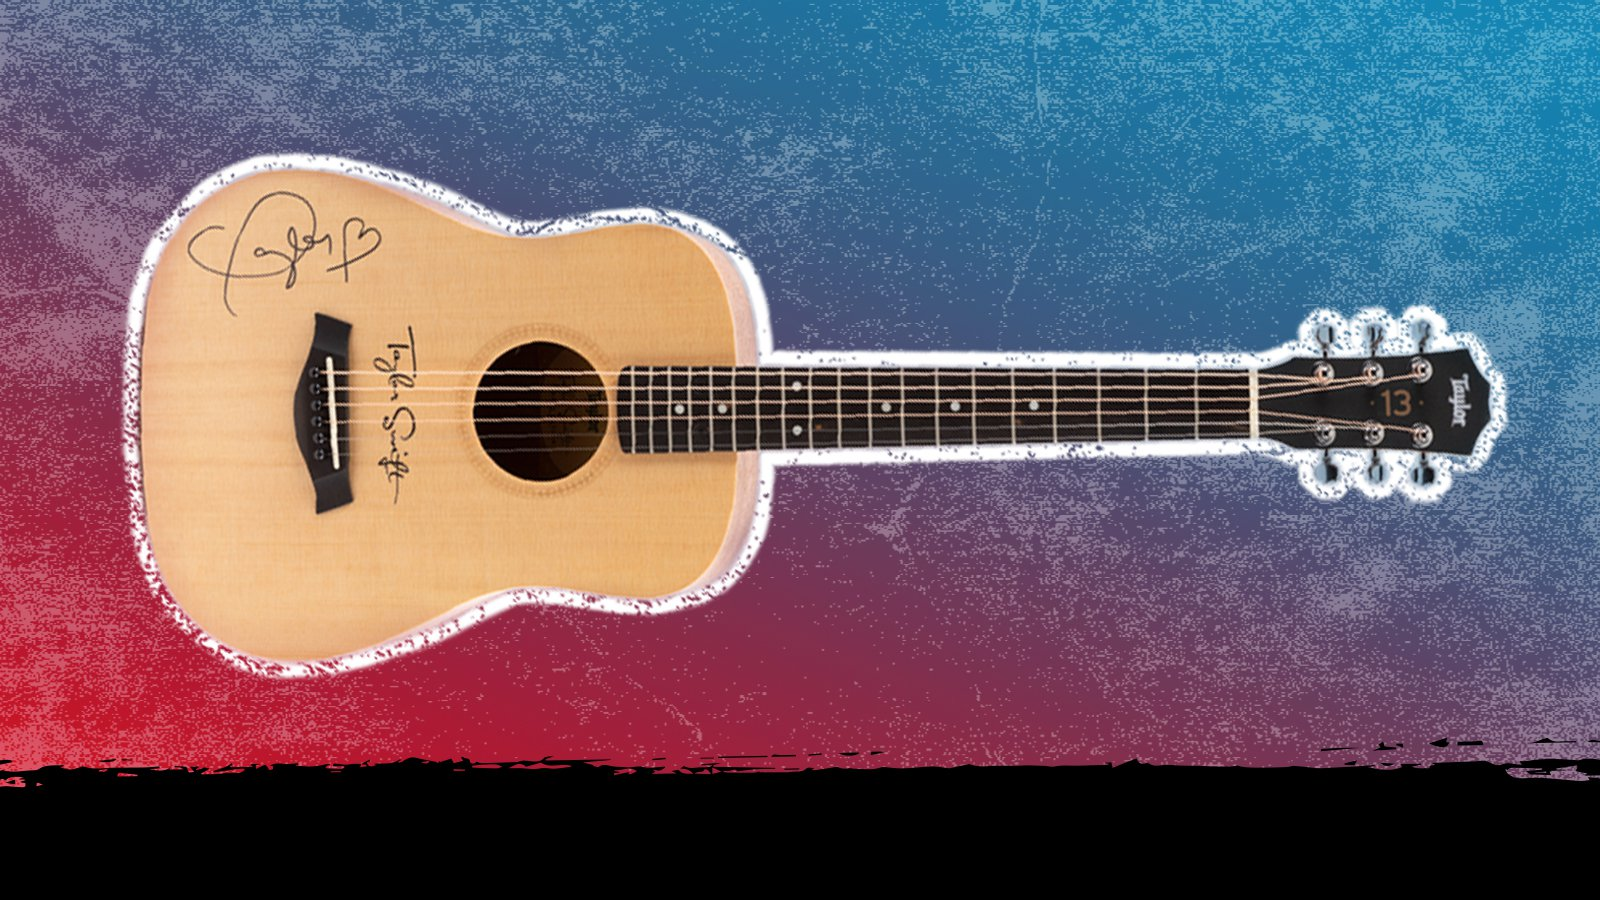 Guitar signed by Taylor Swift